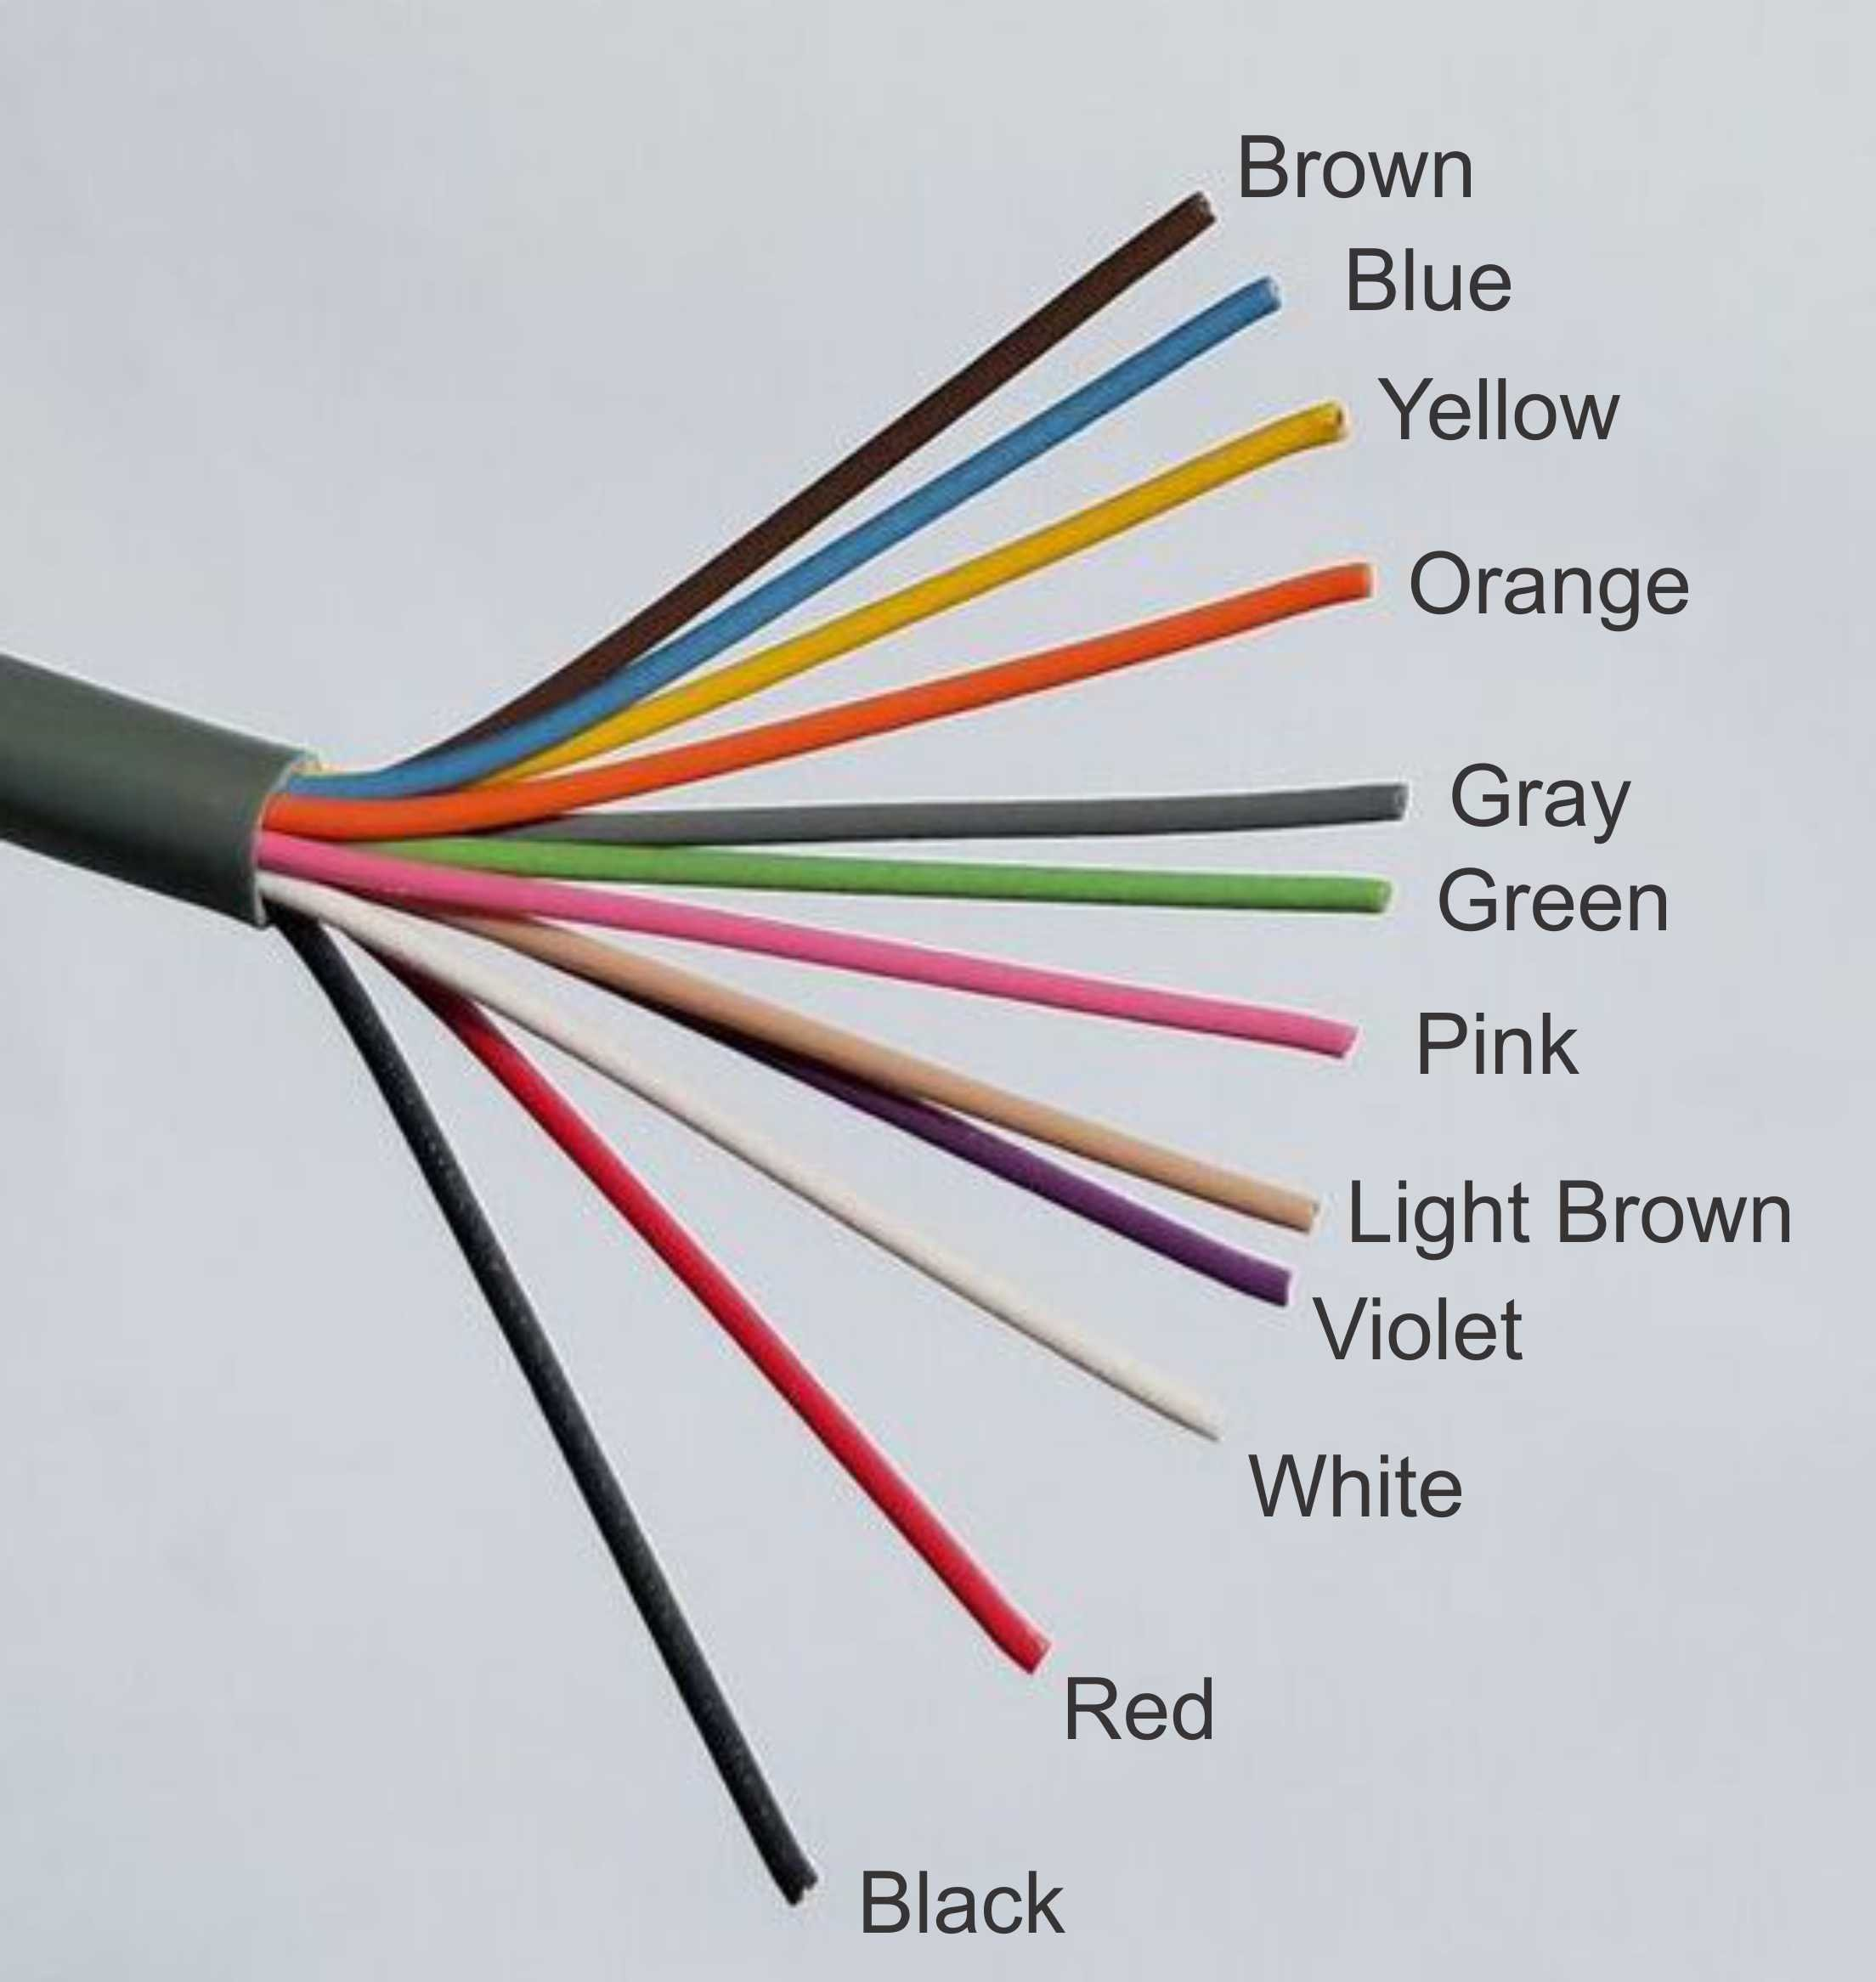 22ga wires in a 12-Conductor, stranded cable with grey PVC jacket, class 2 approved for low voltage applications (20ft) by Oretronix (Image #2)